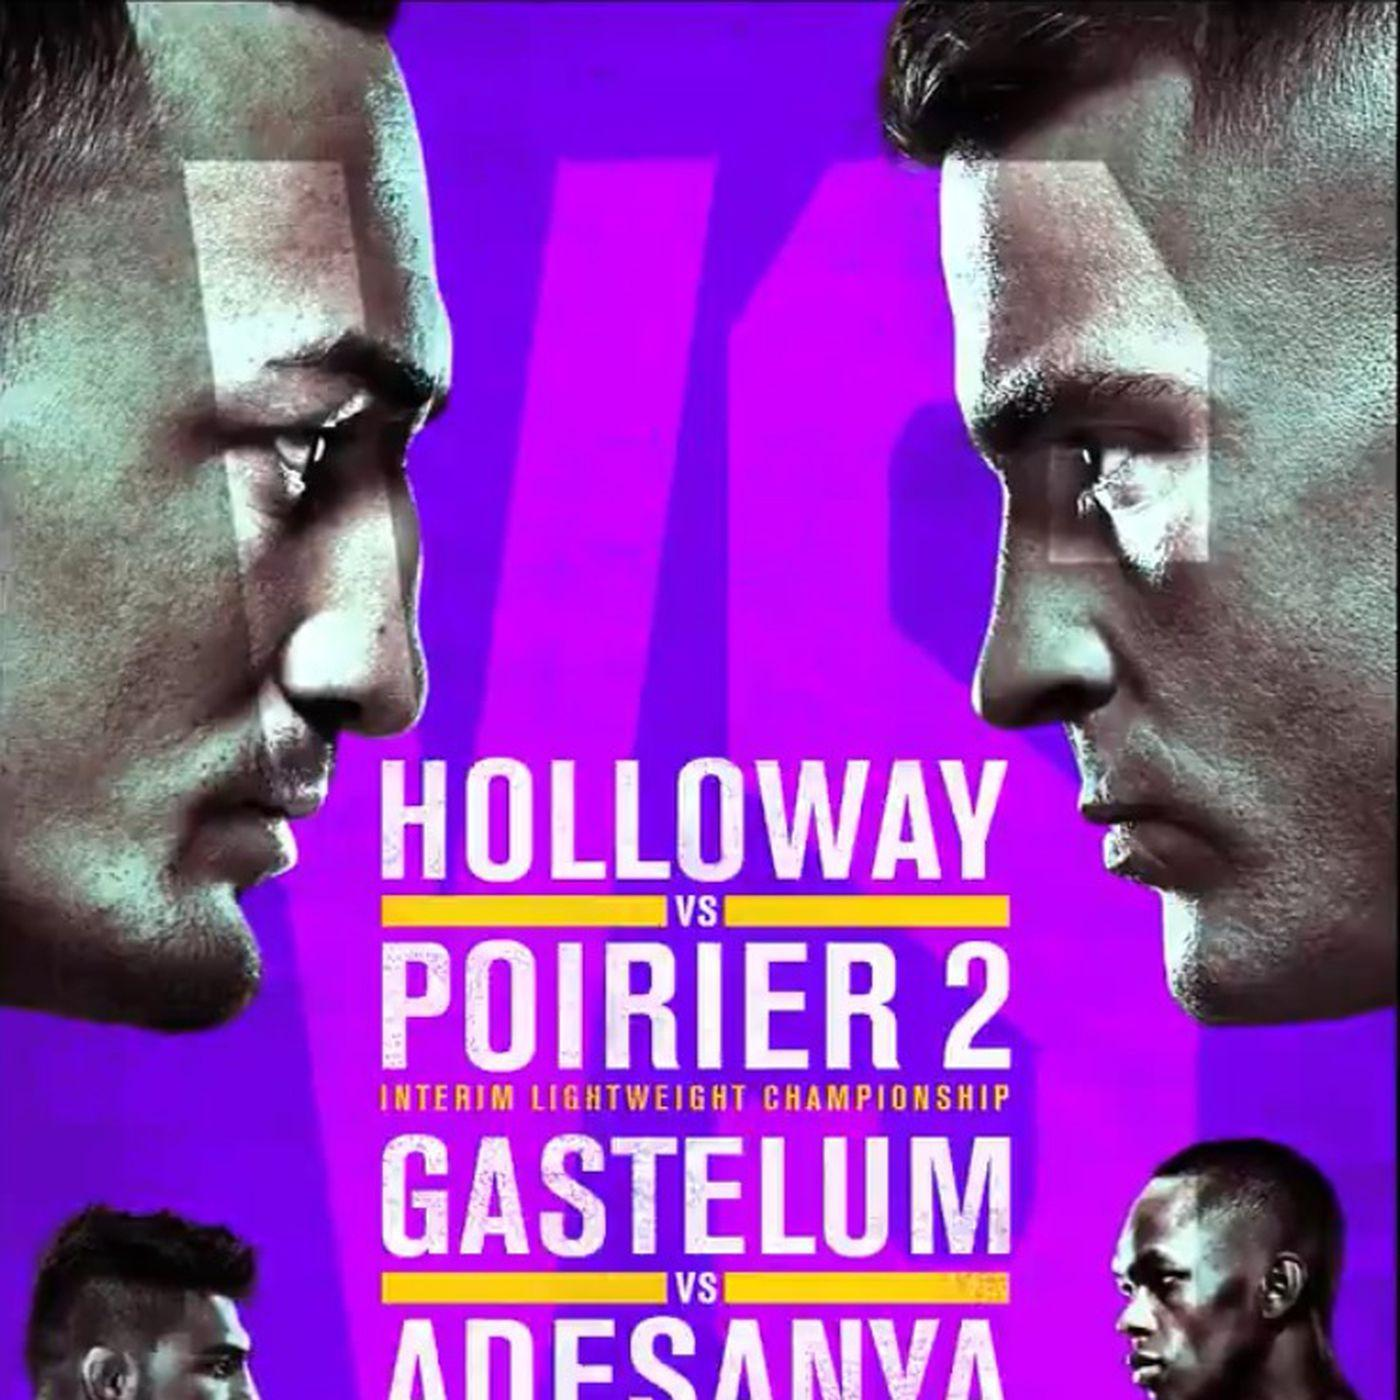 Pic: UFC 236 official poster drops for 'Holloway vs. Poirier 2 ...